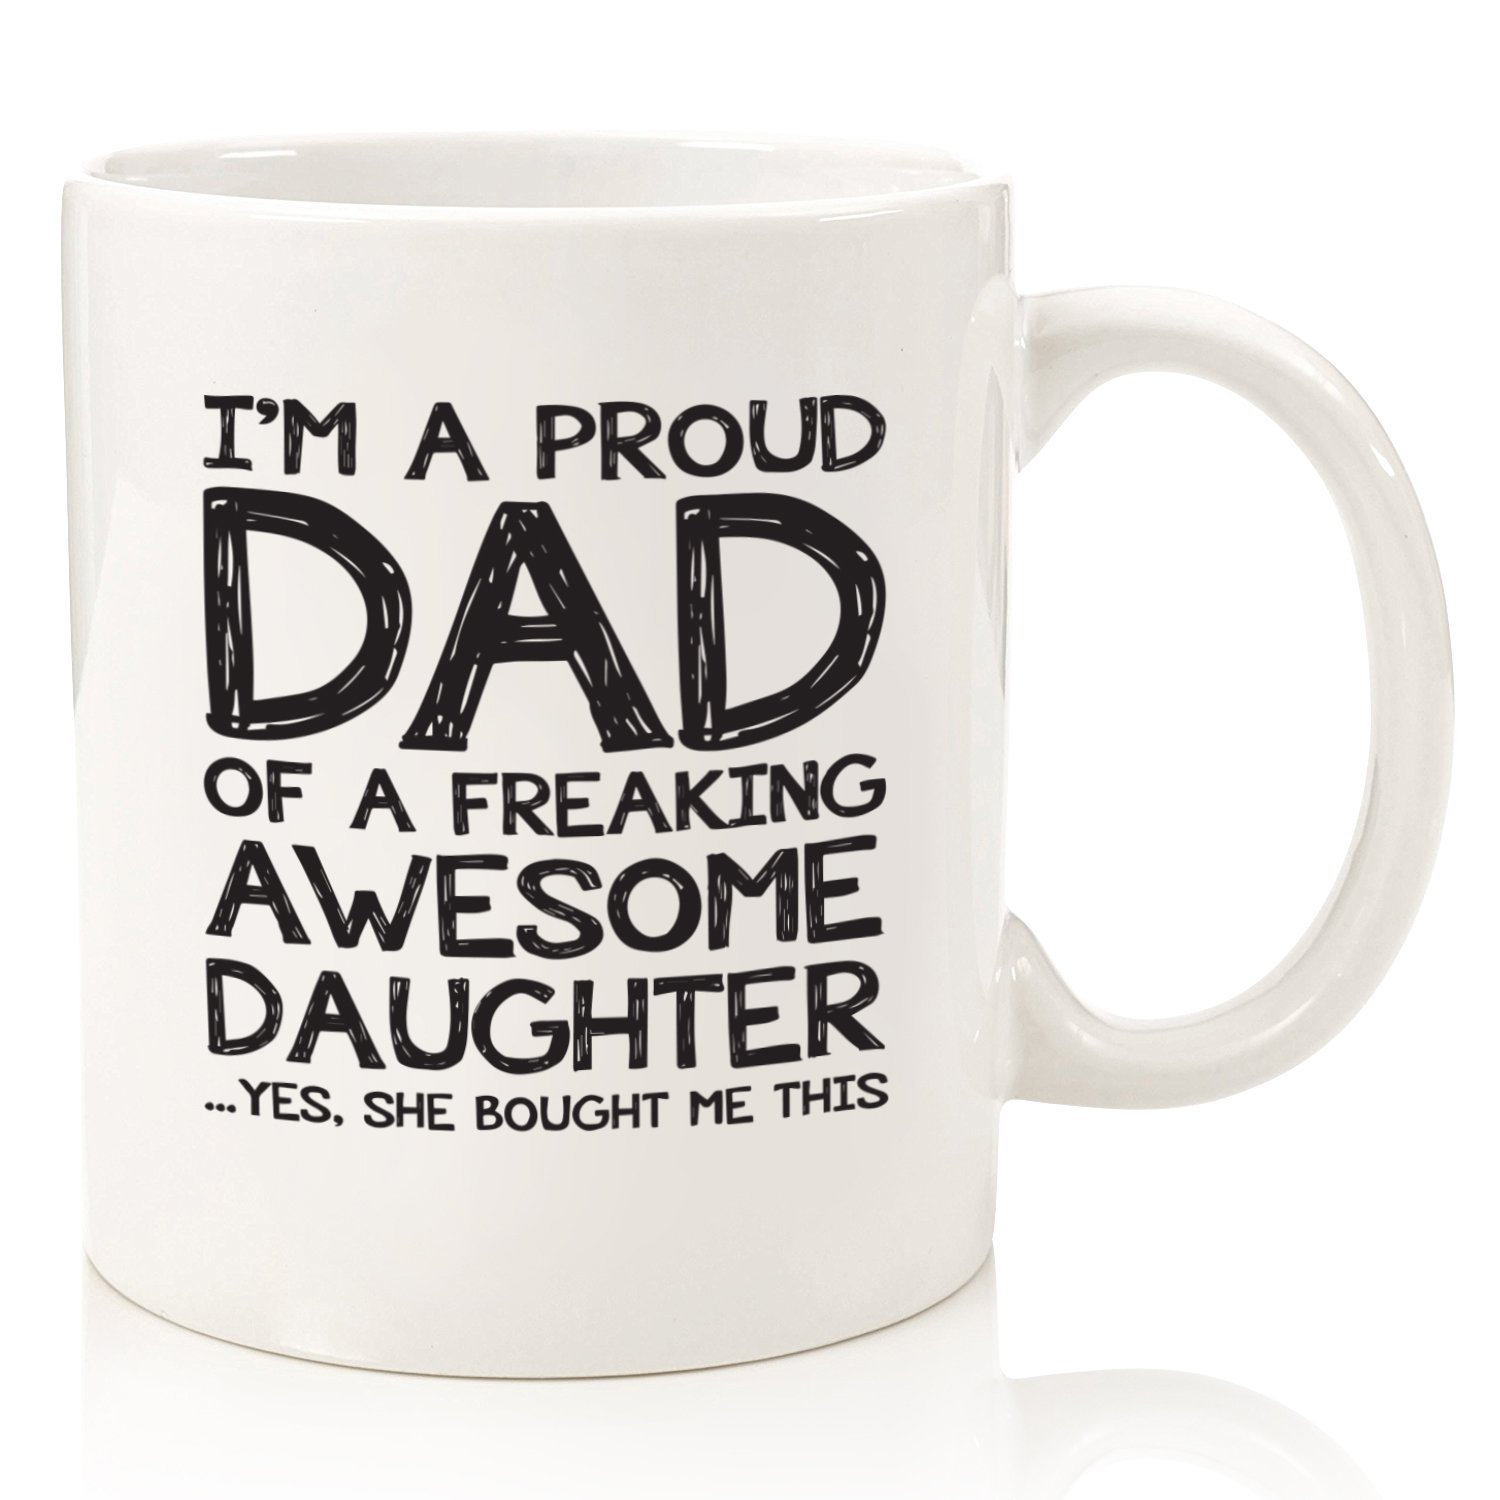 Proud Dad Of A Freaking Awesome Daughter Funny Mug - Best Fathers Day Gag Gifts For Dad From Daughter - Unique Gift Idea For Men, Him - Cool Birthday Present For a Father - Fun Novelty Coffee Cup by Wittsy Glassware and Gifts (Image #1)